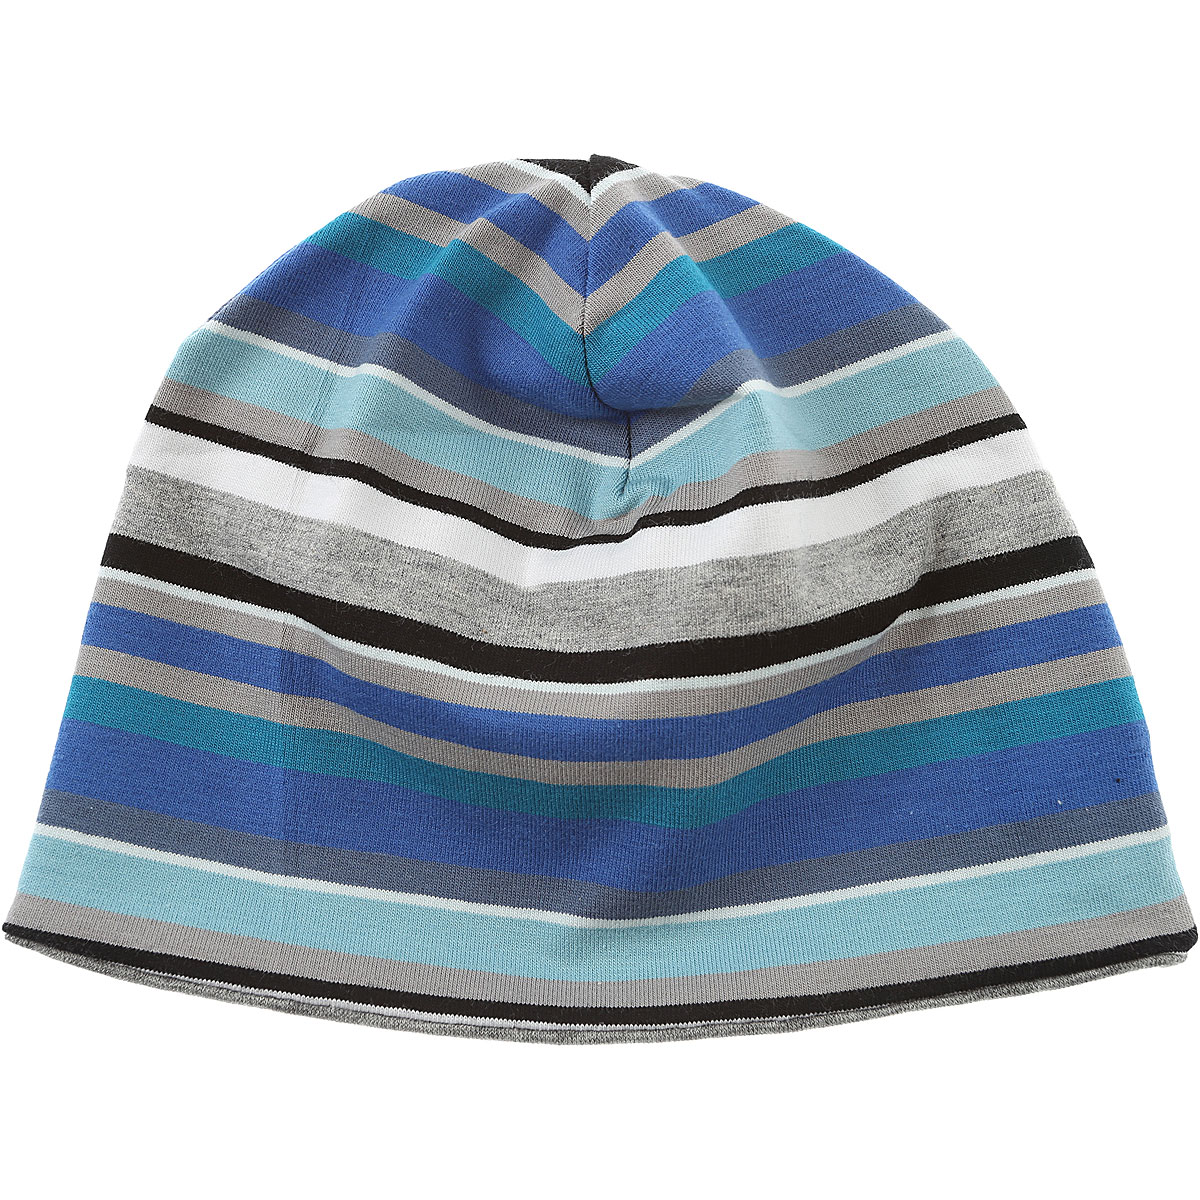 Gallo Baby Hats for Boys On Sale in Outlet, Blue, Cotton, 2019, 11m 6m